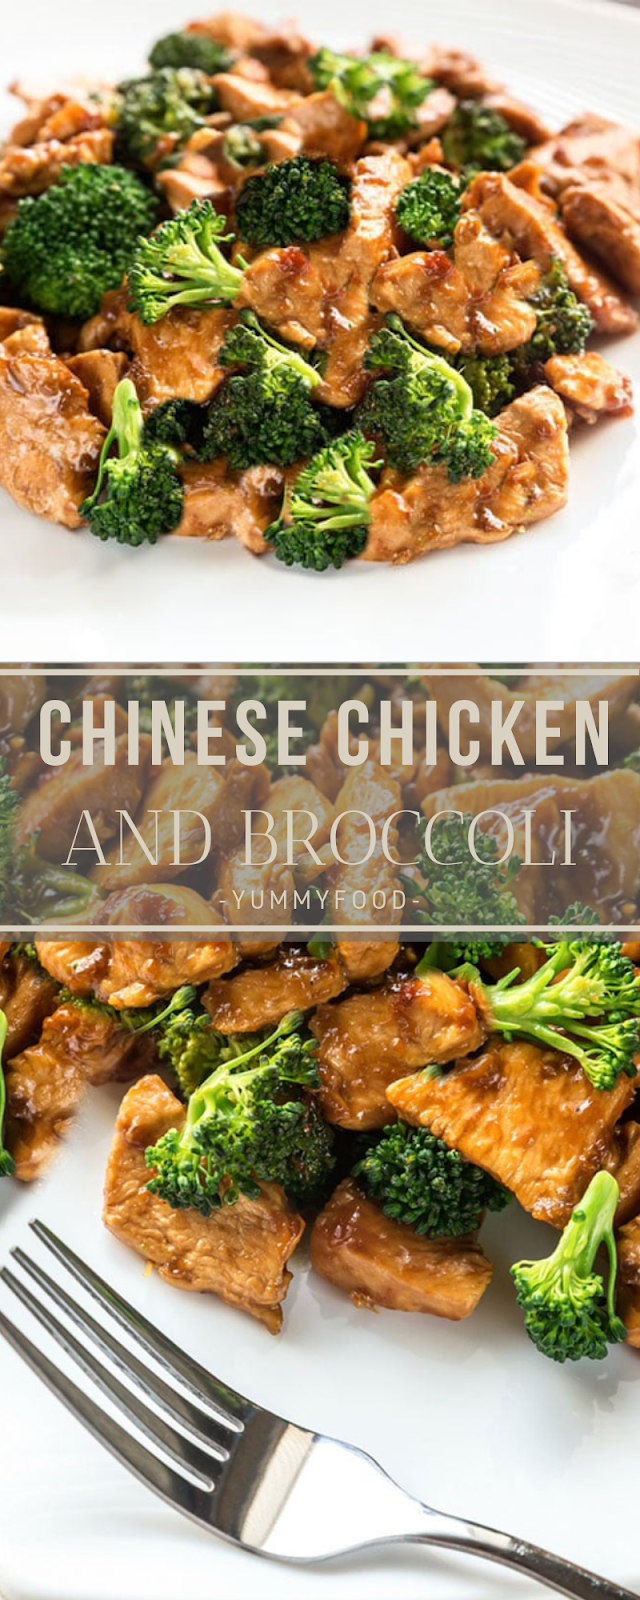 Chinese Poultry and Broccoli